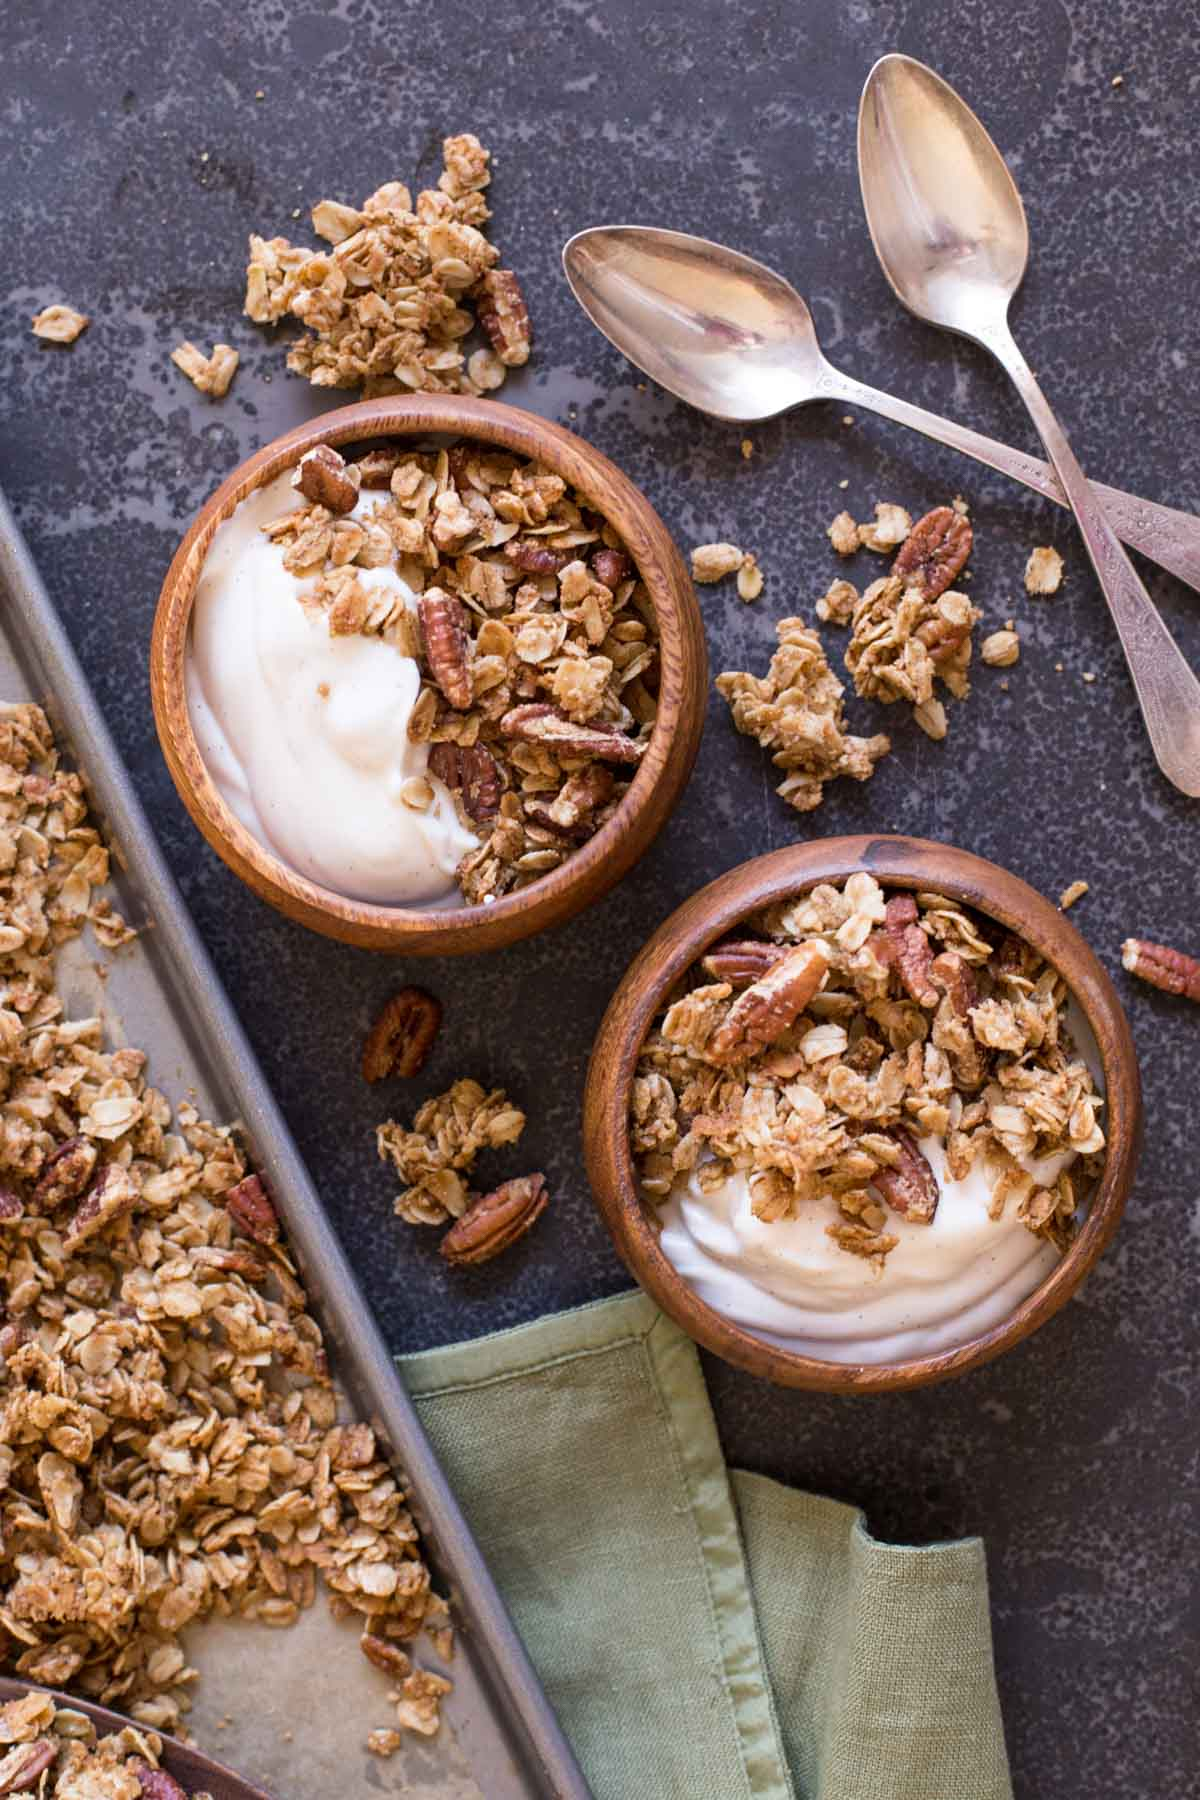 Two bowls of yogurt and Gingerbread Spice Granola, with two spoons next to them.